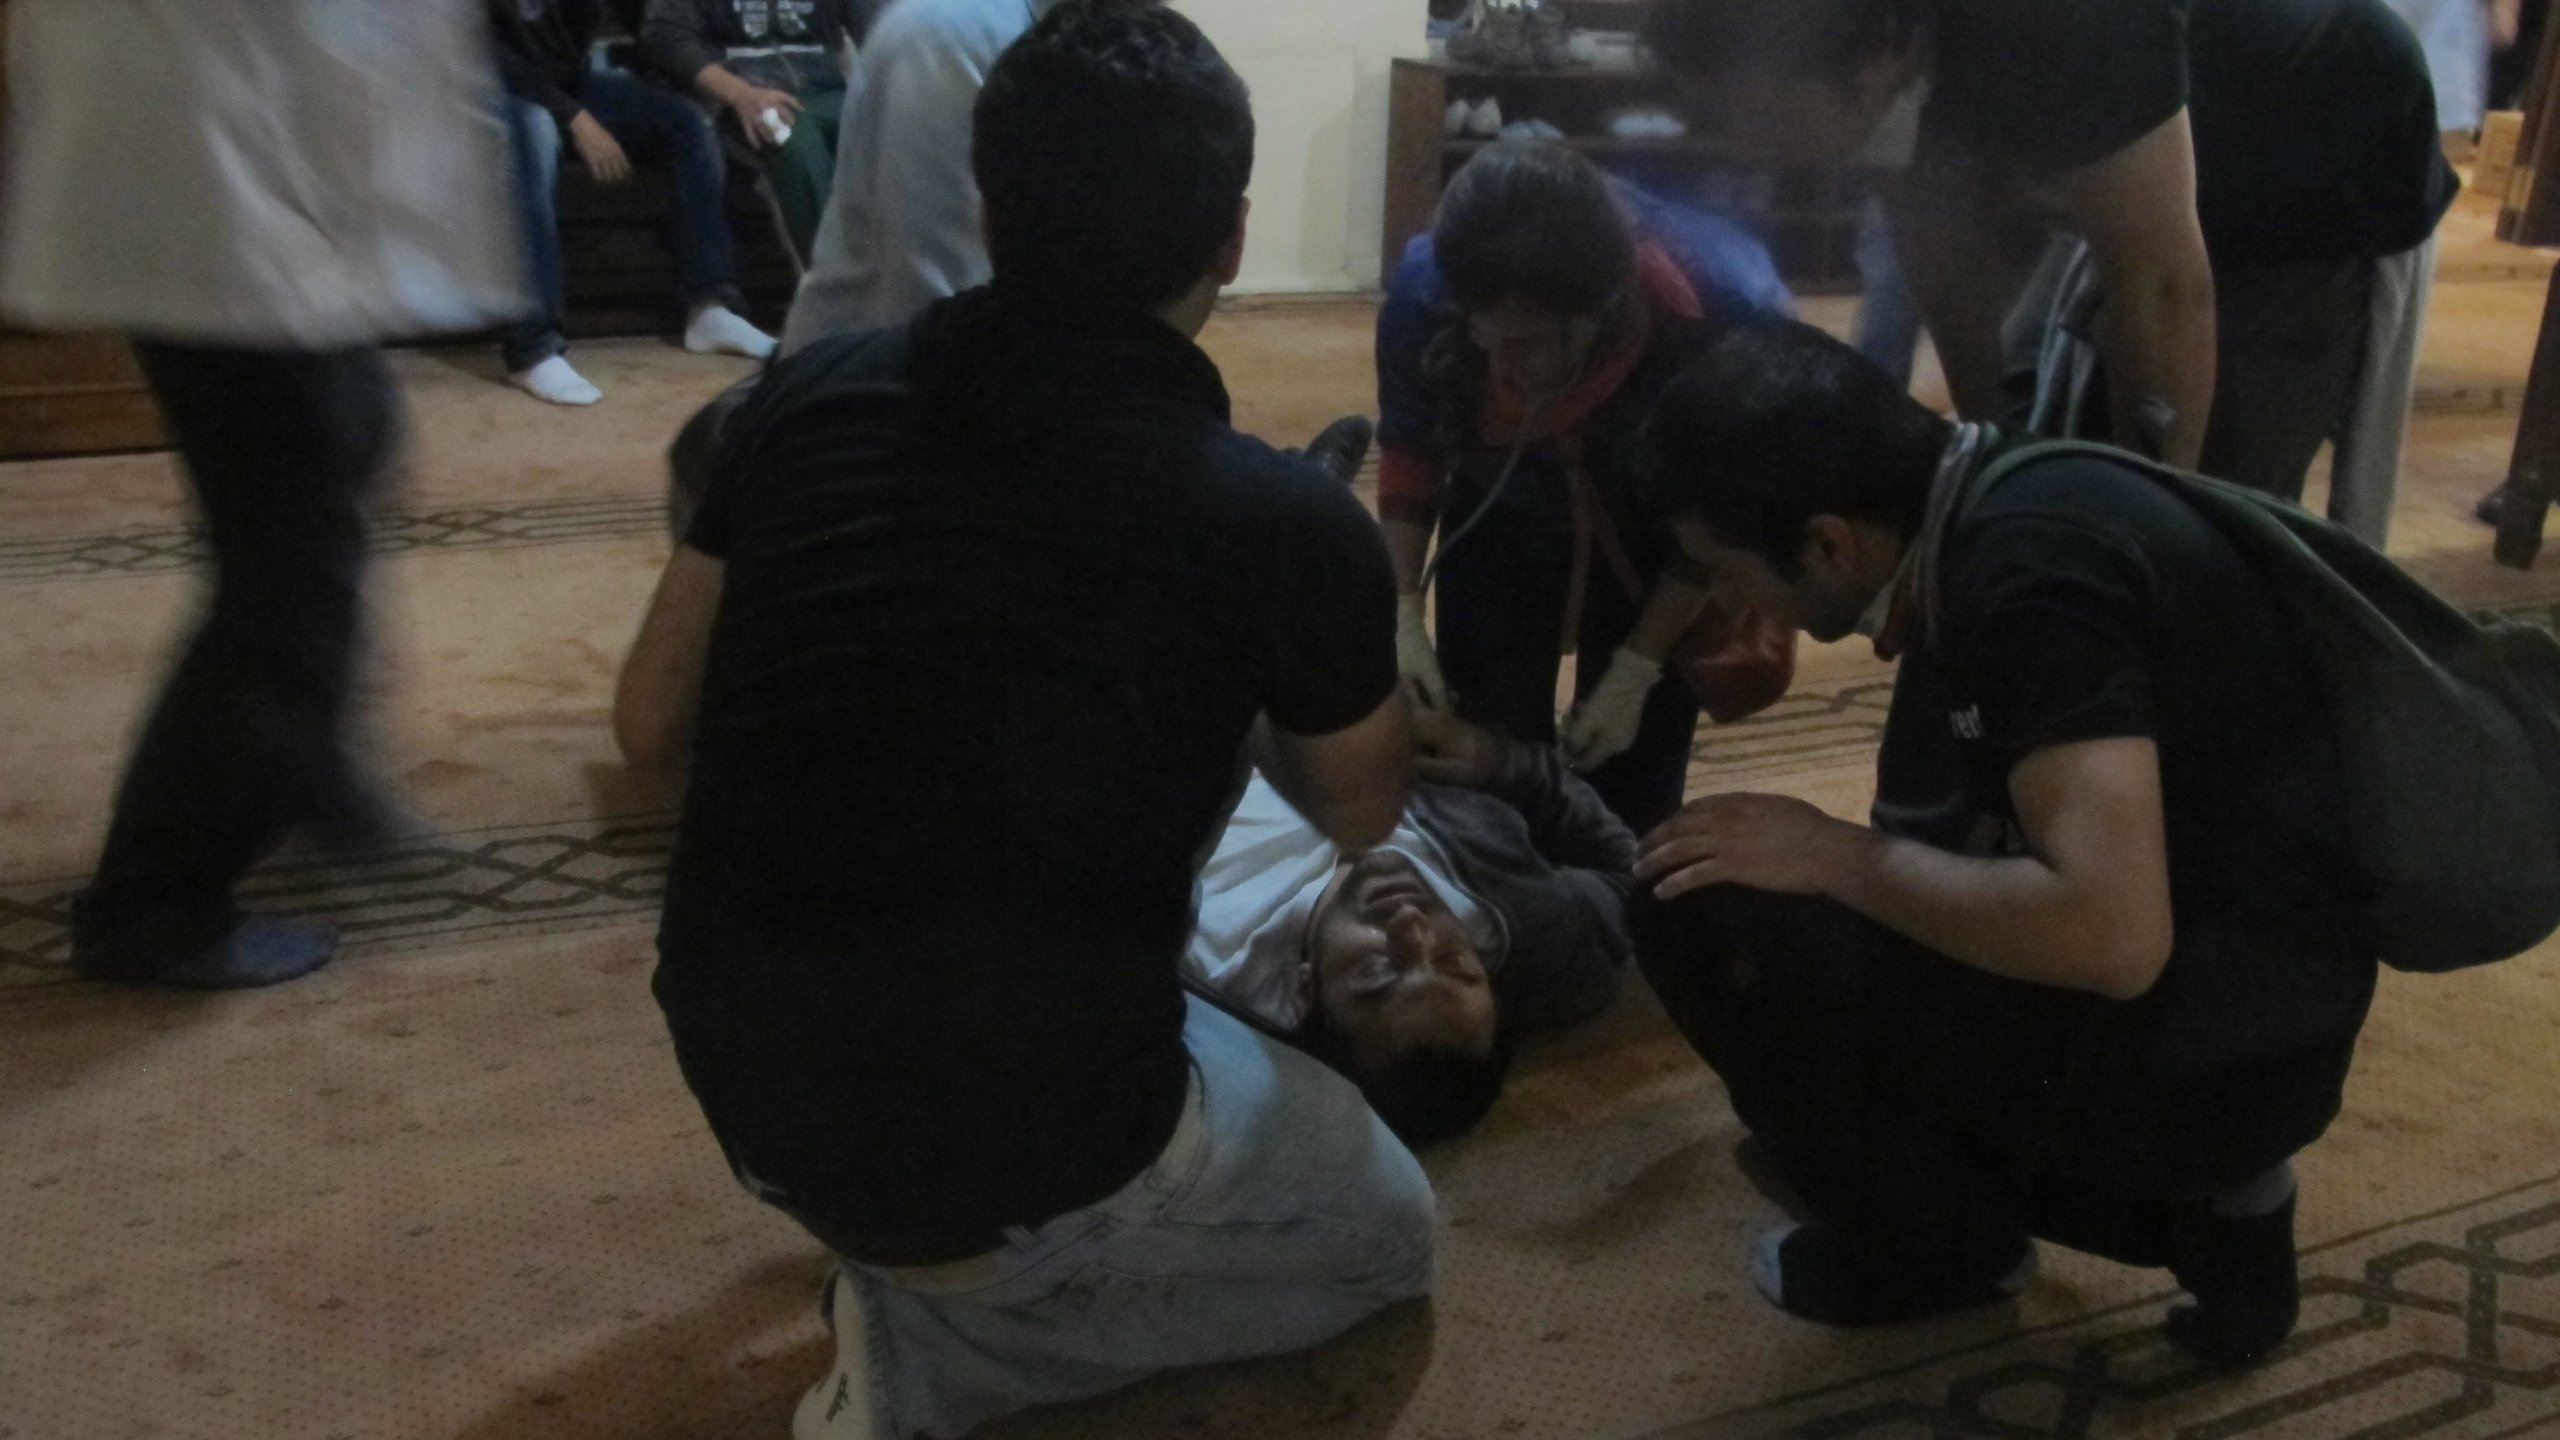 Protesters injured during demonstrations receive ad hoc medical treatment in Instanbul, Turkey on Sunday. (Credit: CNN)